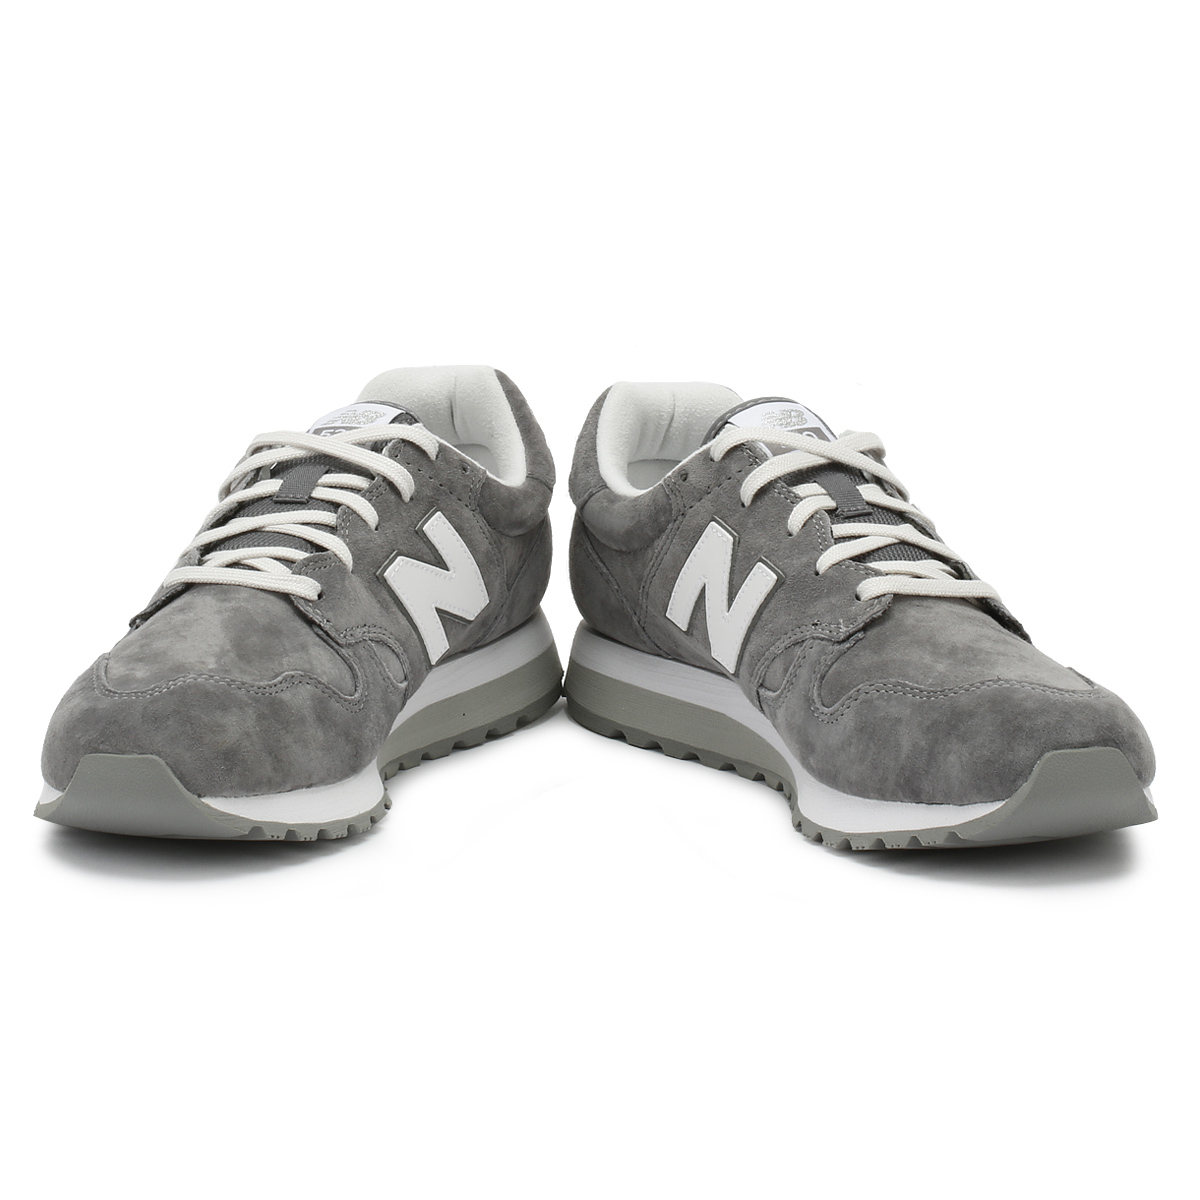 New Lace Balance Damenschuhe Trainers Grau 520 Classic Suede Lace New Up Sport Casual Schuhes 2512bd